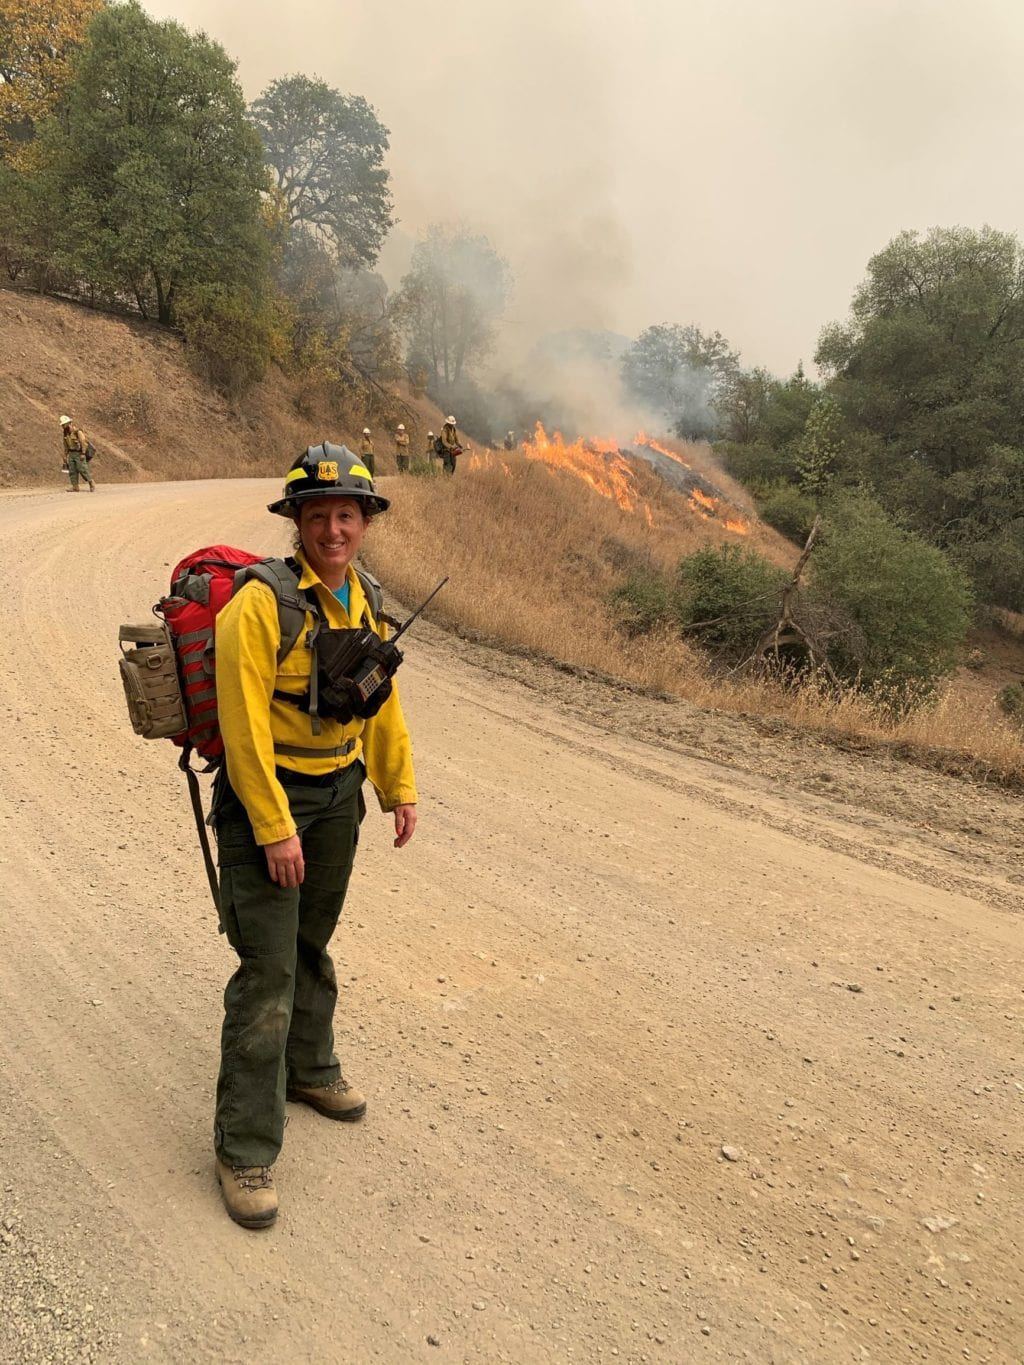 Jessica Hawkins, Forest Ecologist, on the August Complex Wildfire in California as a Fireline EMT